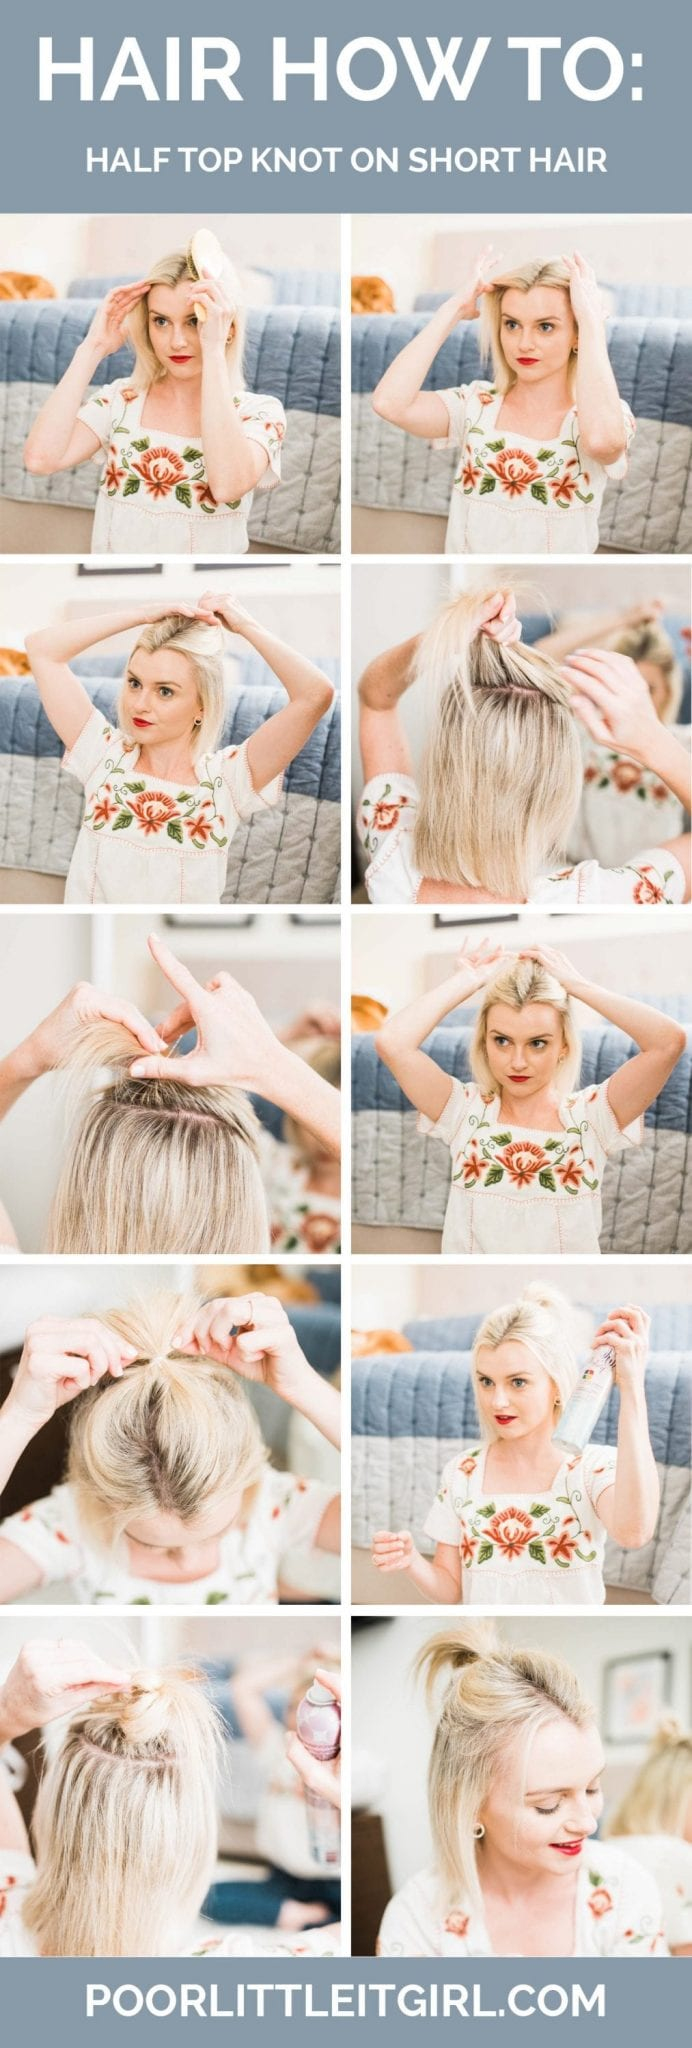 How To Do A Half Top Knot On Short Hair Poor Little It Girl